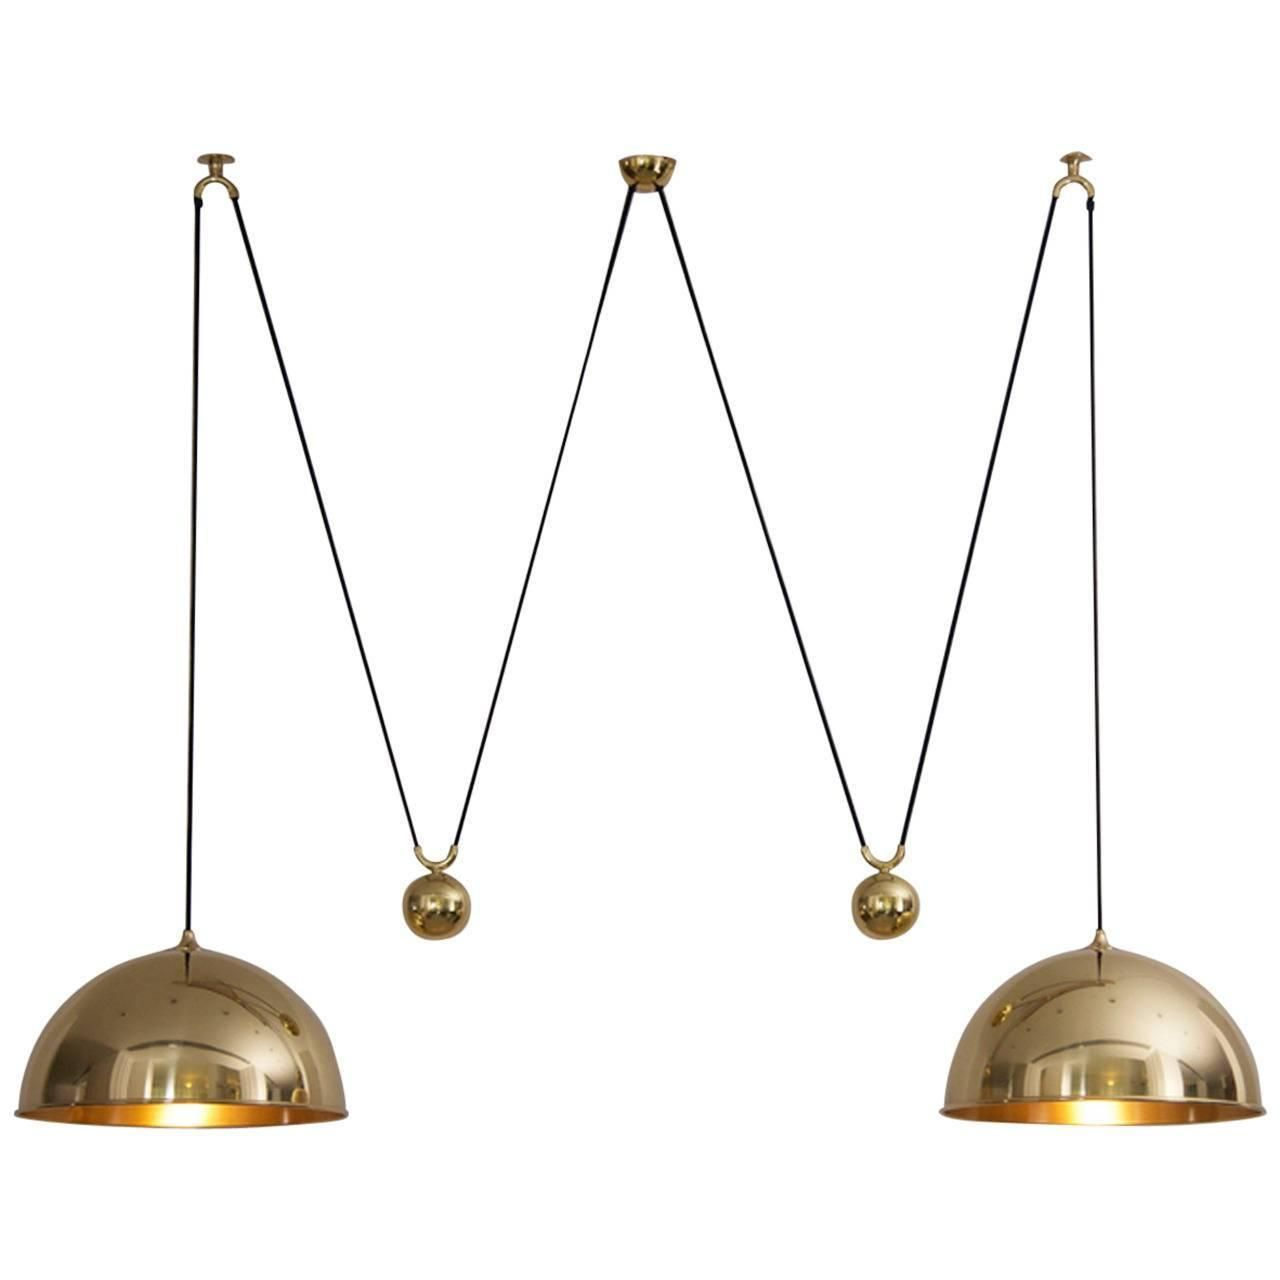 Florian Schulz florian schulz posa pendant l with side counter weights